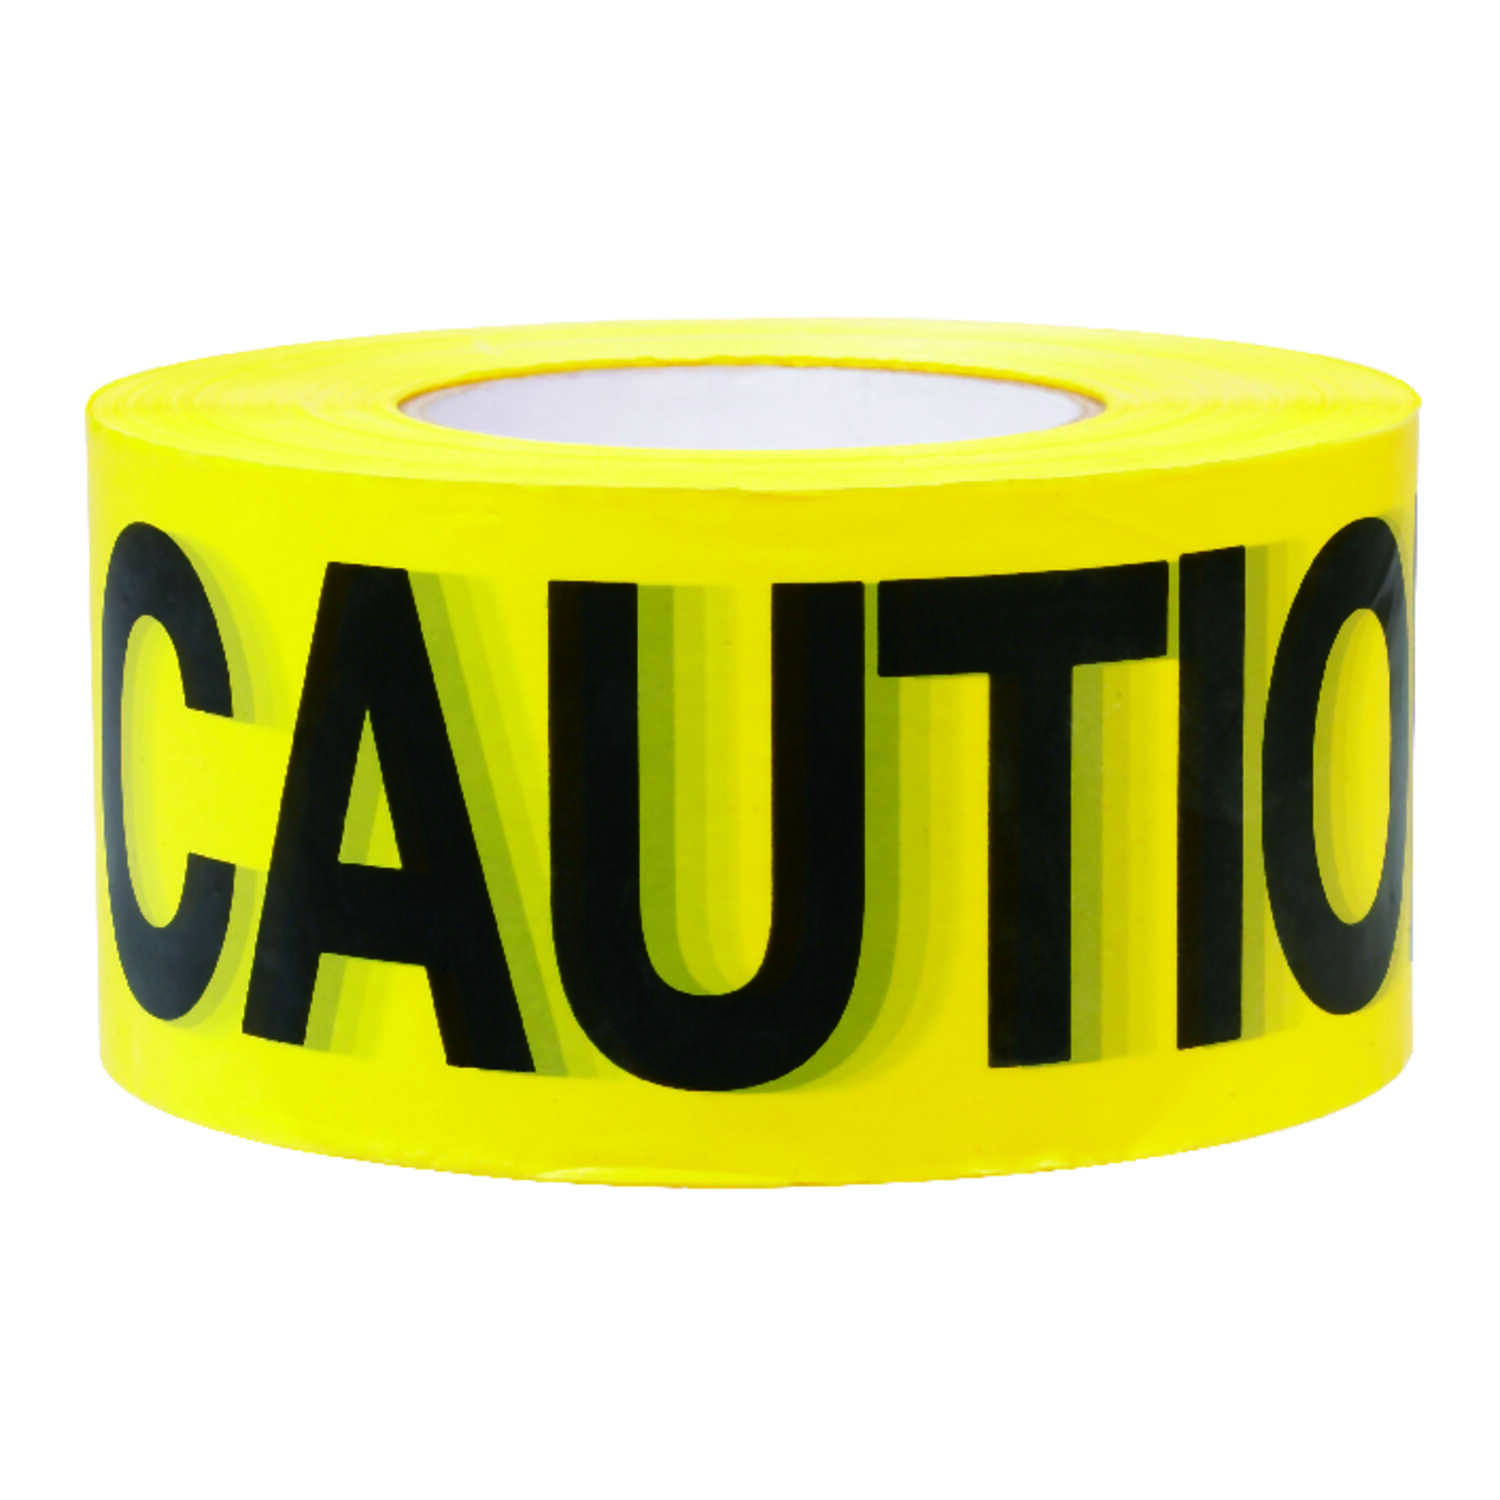 C.H. Hanson  3 in. W x 3 in. W x 1000 ft. L Plastic  Caution  Barricade Tape  Sub-Zero  Yellow